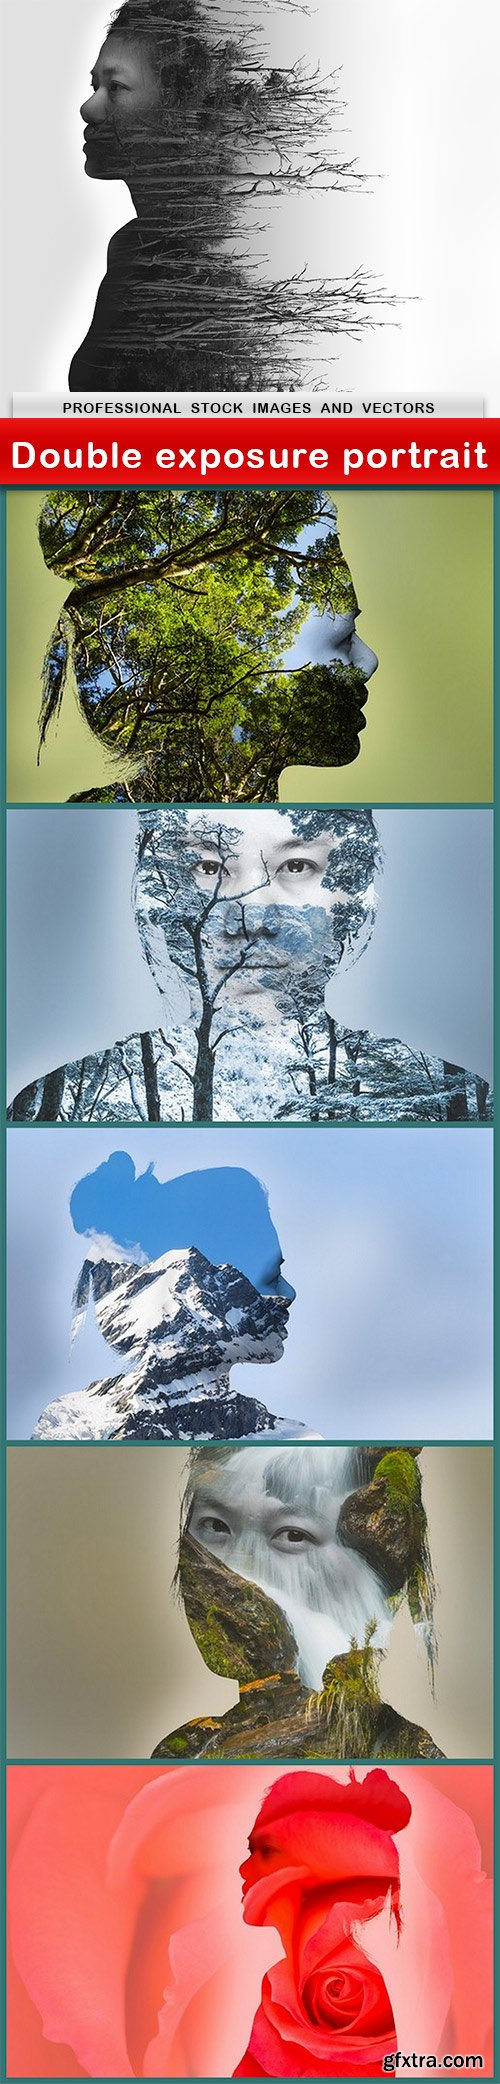 Double exposure portrait - 6 UHQ JPEG